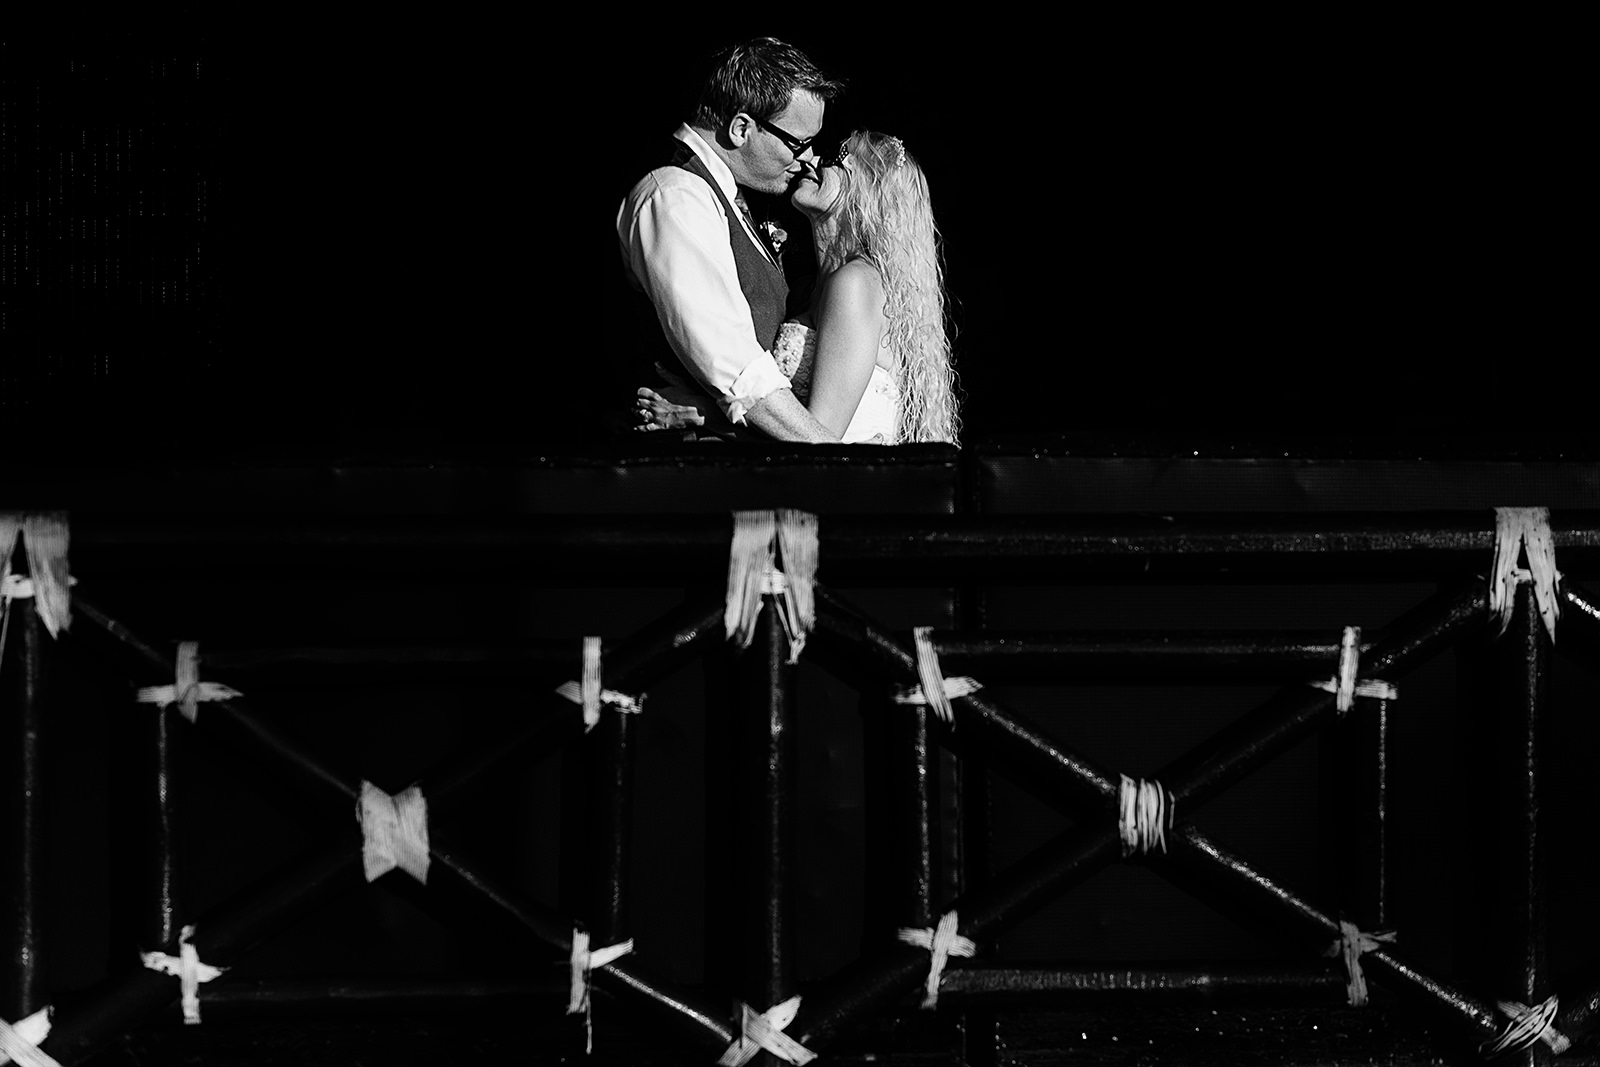 black and white kiss of wedding couple against black background